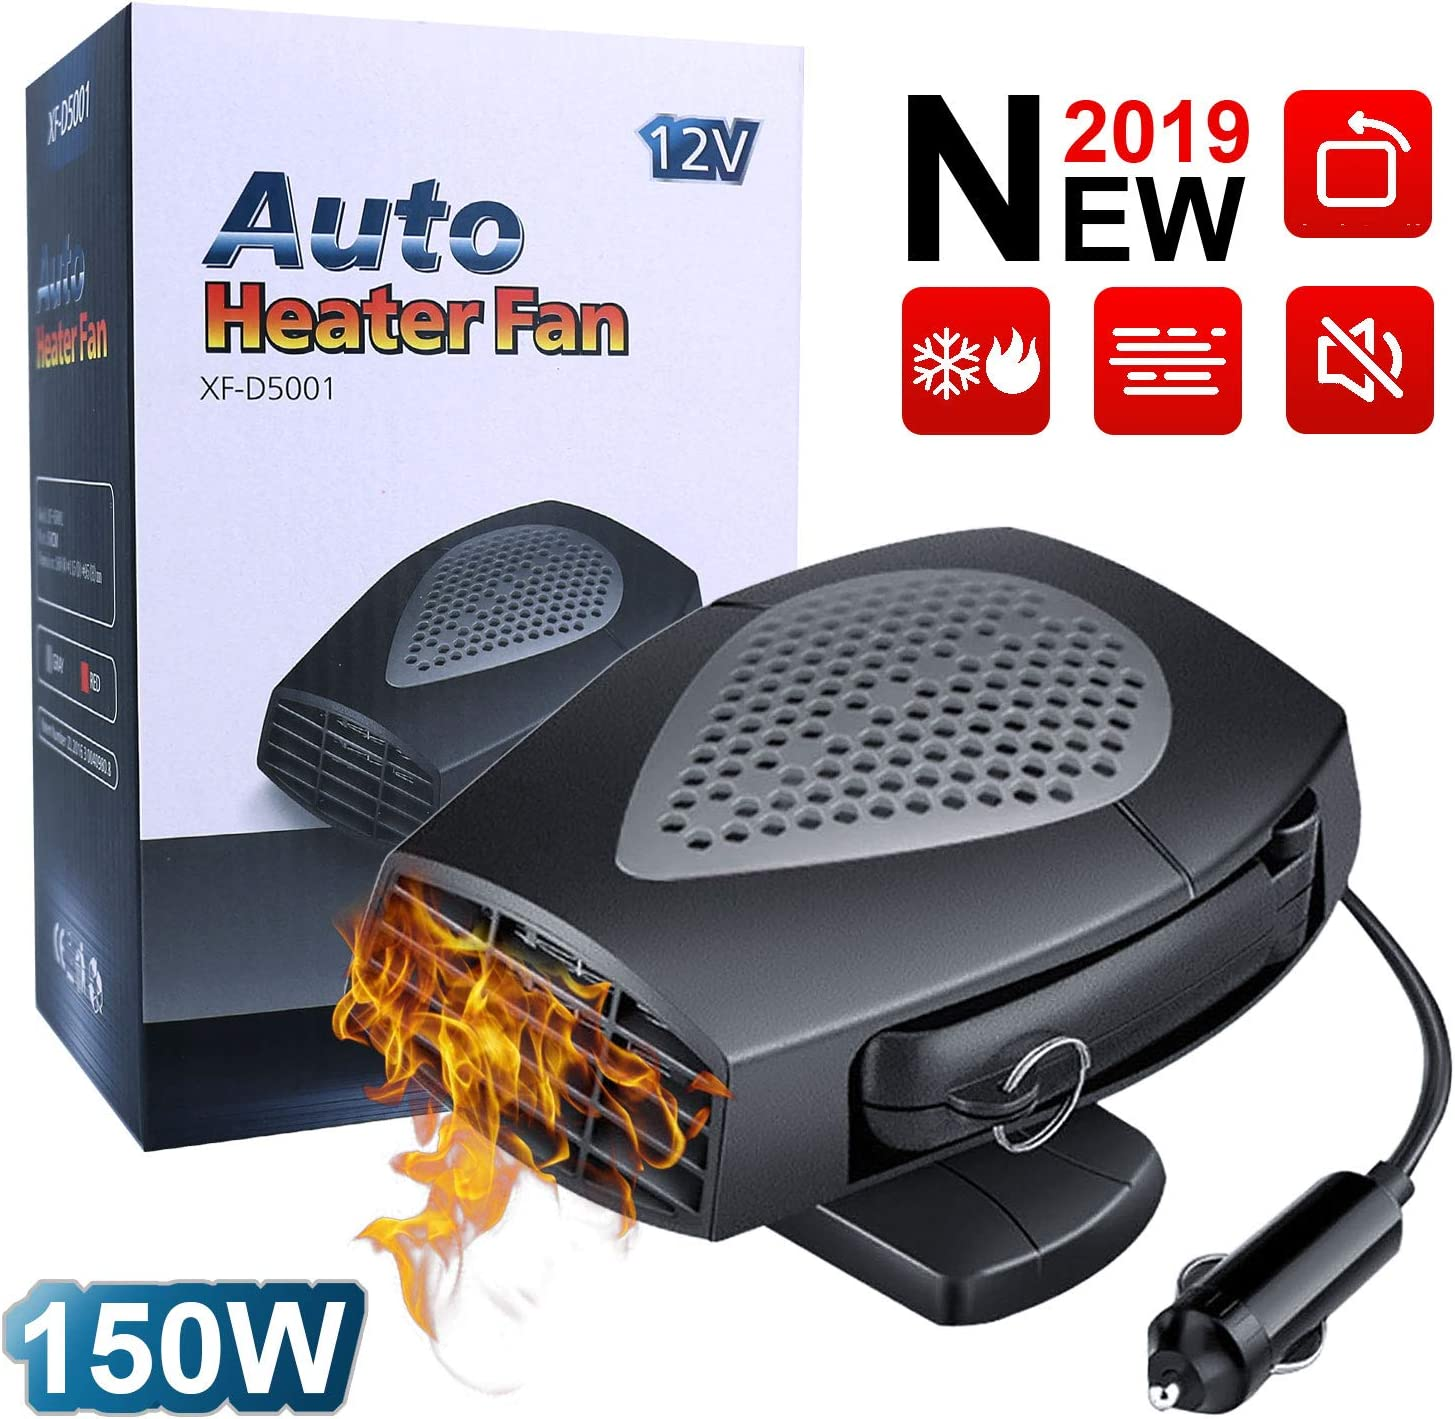 Car Heater - 12V 150W Portable Automobile Windscreen Fan with Heating and Cooling 2 in 1 Modes for Fast Heating Defrost Defogger, 3-Outlet Plug in Cigarette Lighter (Black)